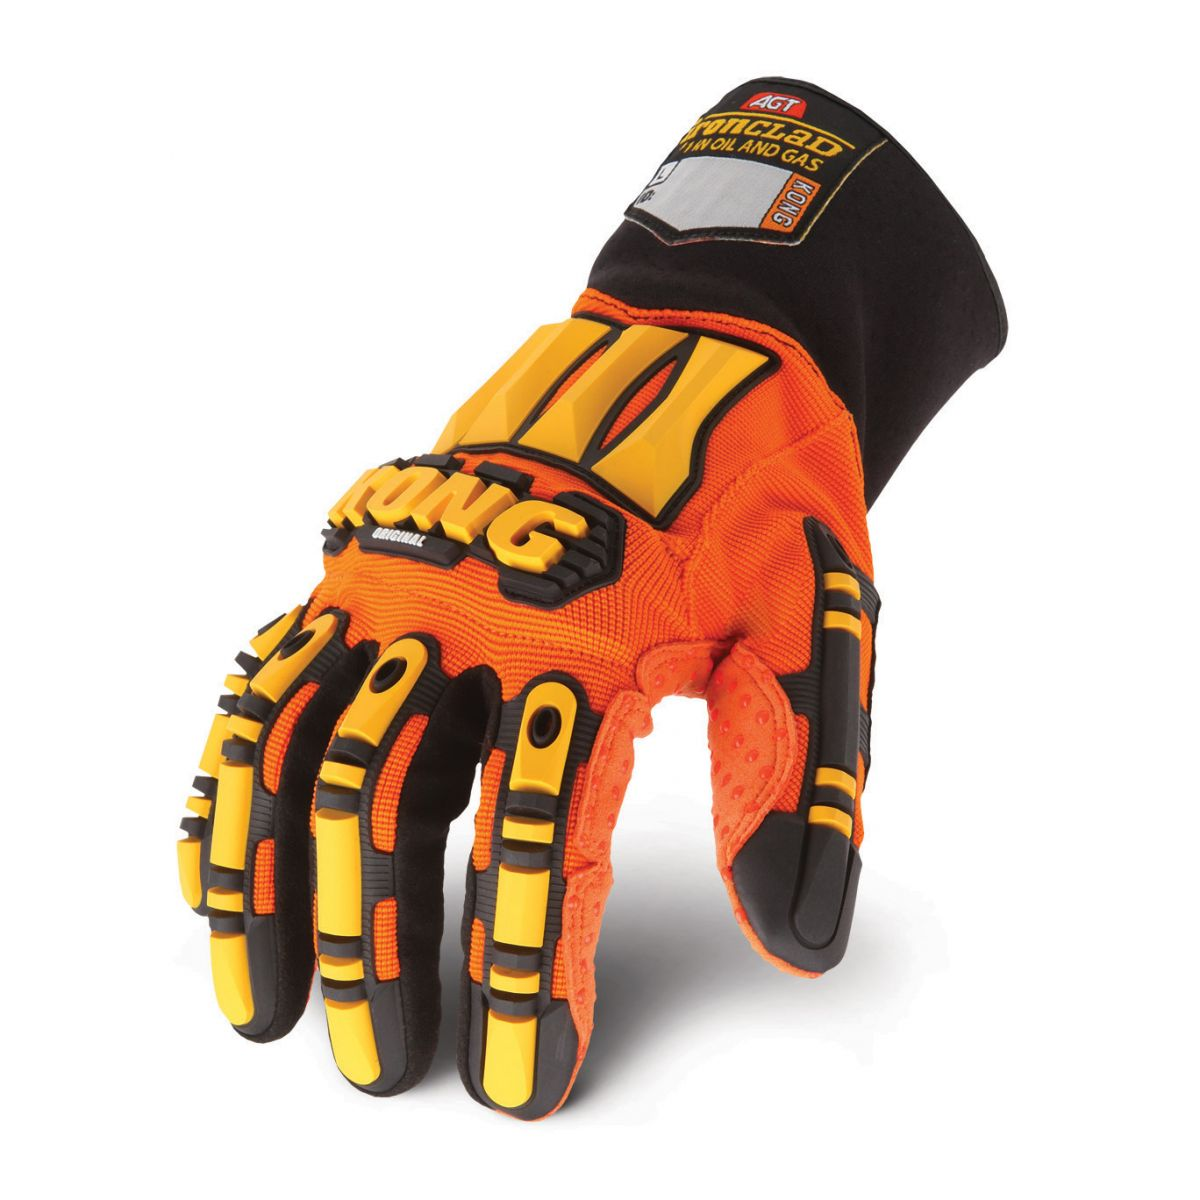 Ironclad KONG ORIGINAL Impact Protection Gloves